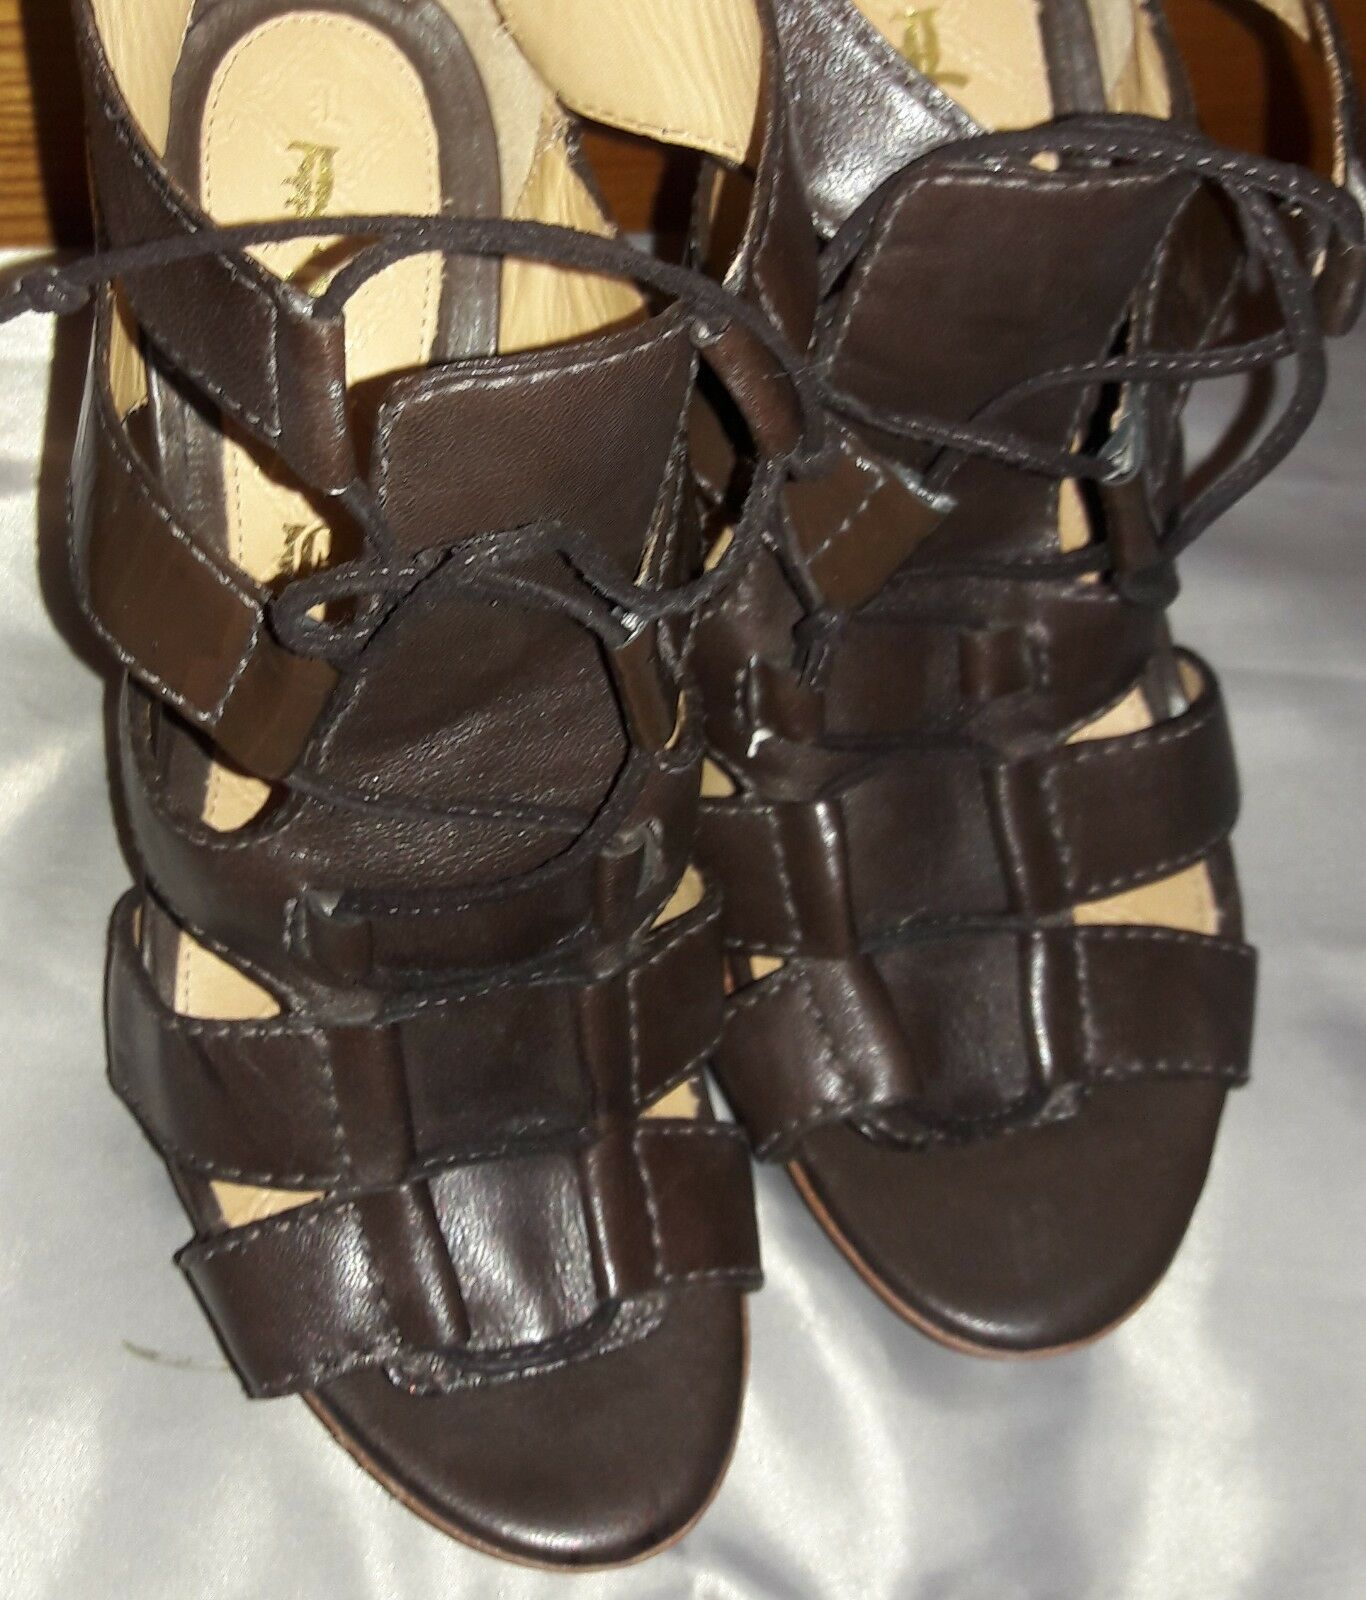 L.A.M.B by HIGH GWEN STEFFANI   HIGH by HEELS SANDALS NEW WITH DEFECT-RETAILS FOR 200 525481